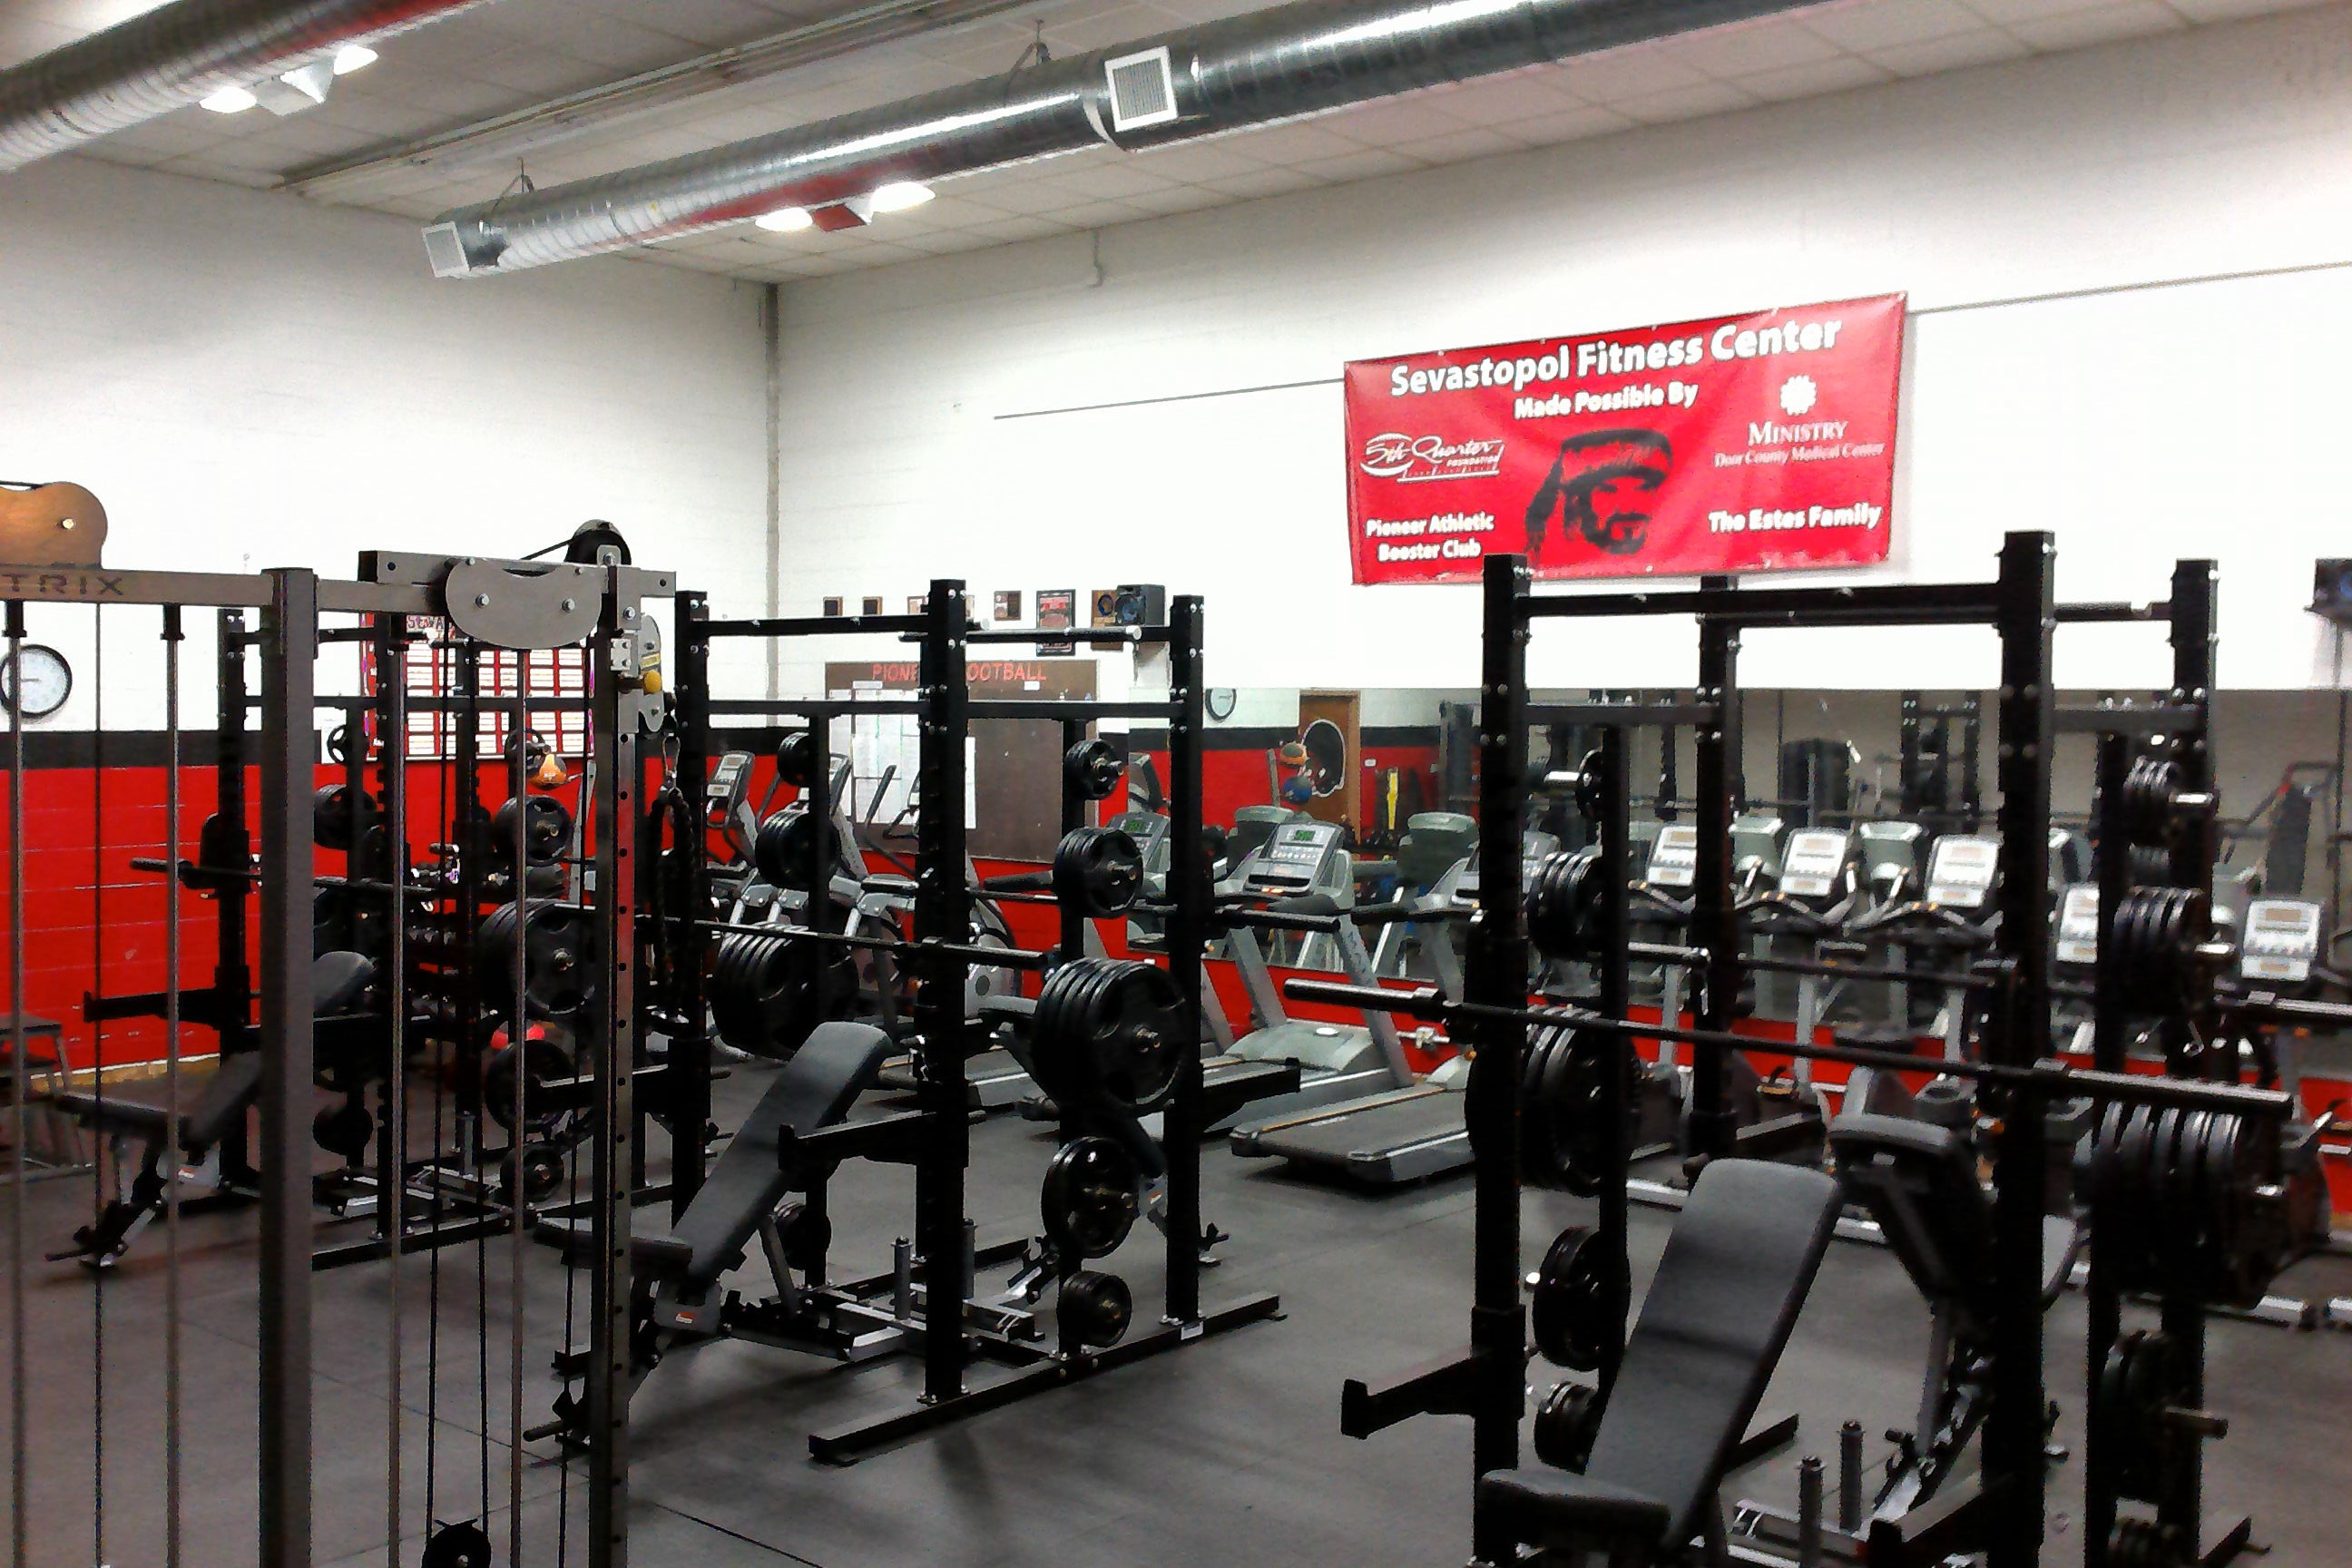 Sevastopol Fitness Center Upgrades